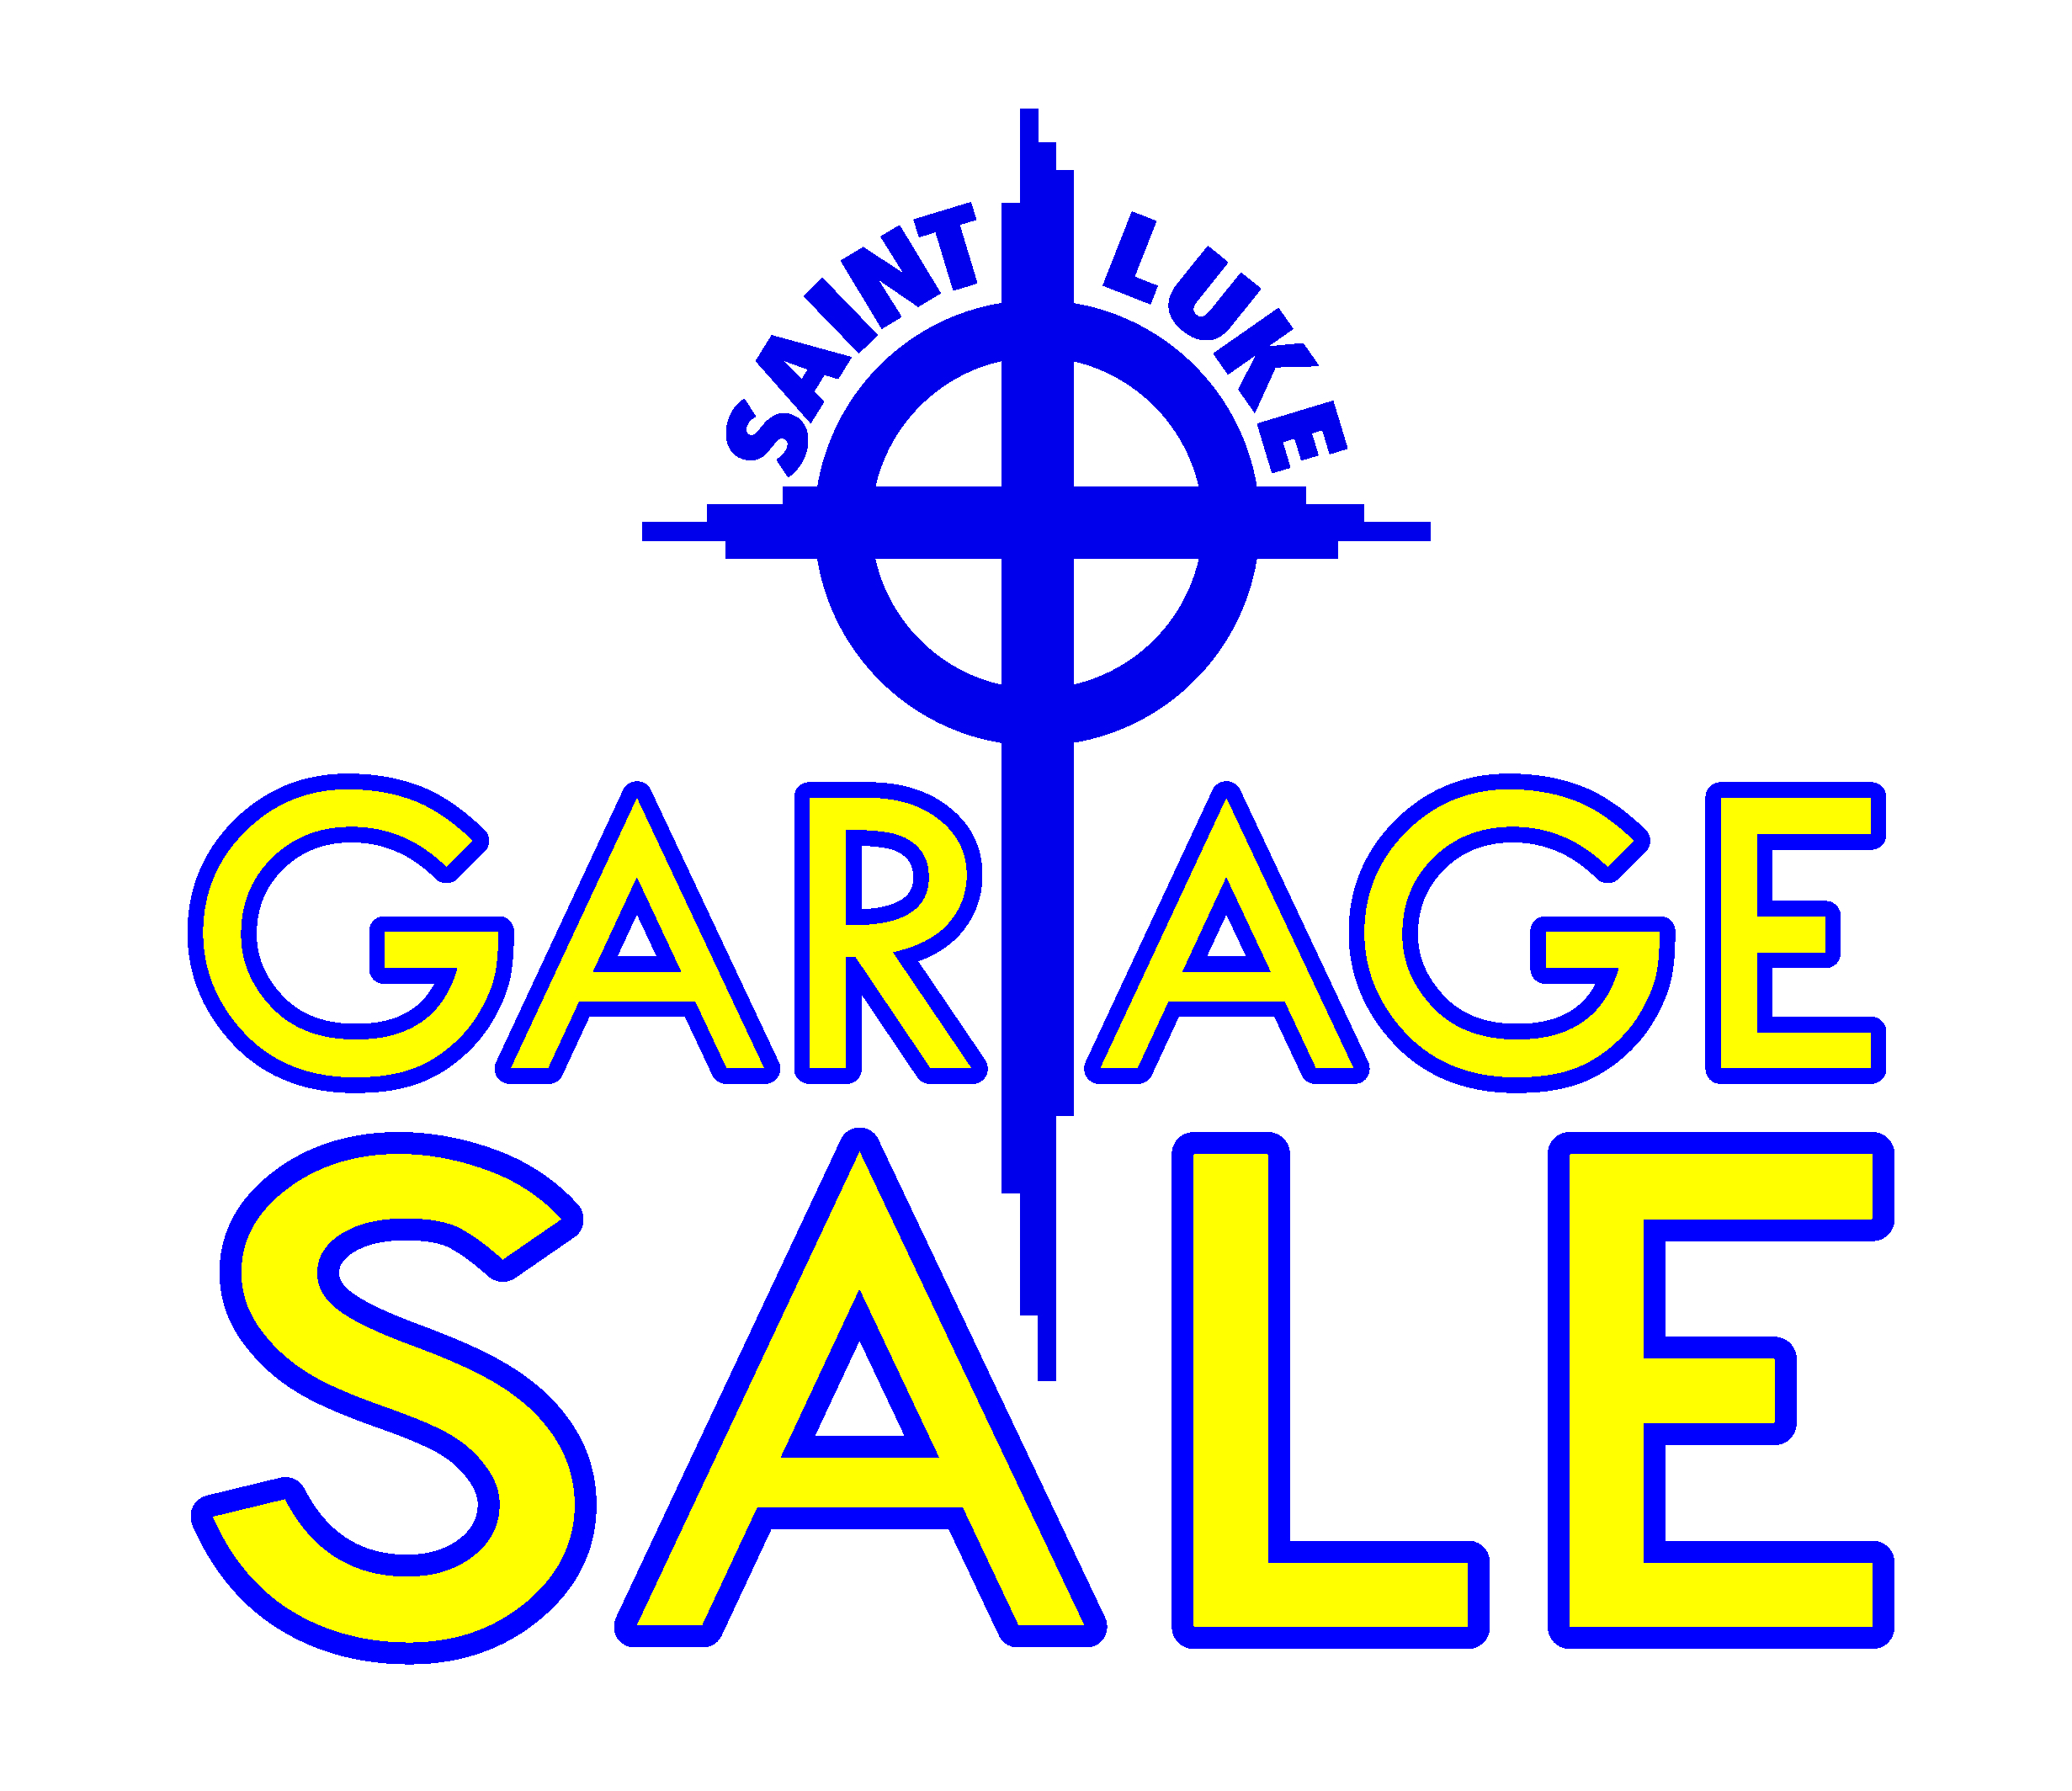 Annual Garage Sale (August 3-4)